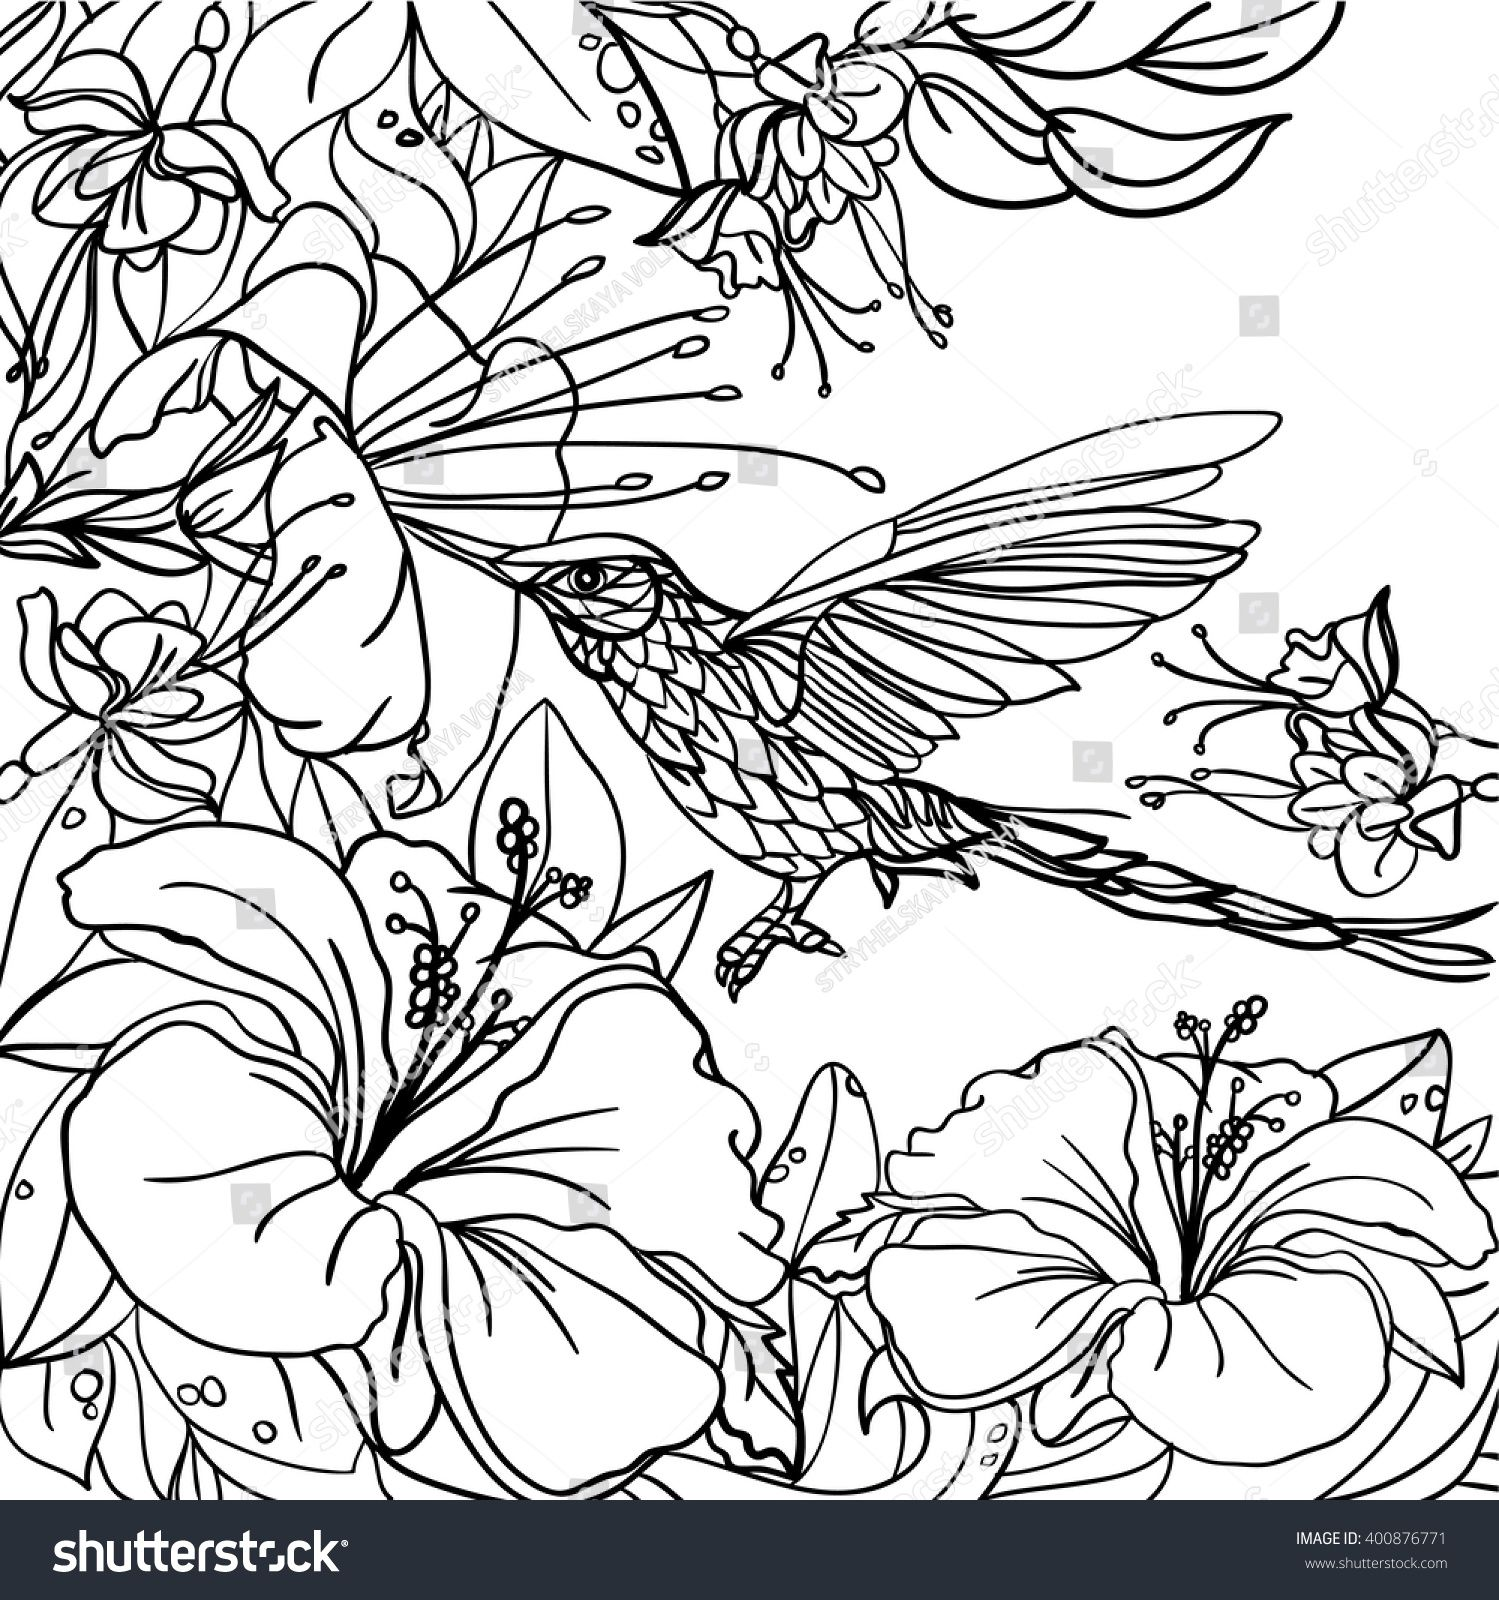 1499x1600 Shocking Coloring Pages Tropical Birds Leaves Stock Vector Pict